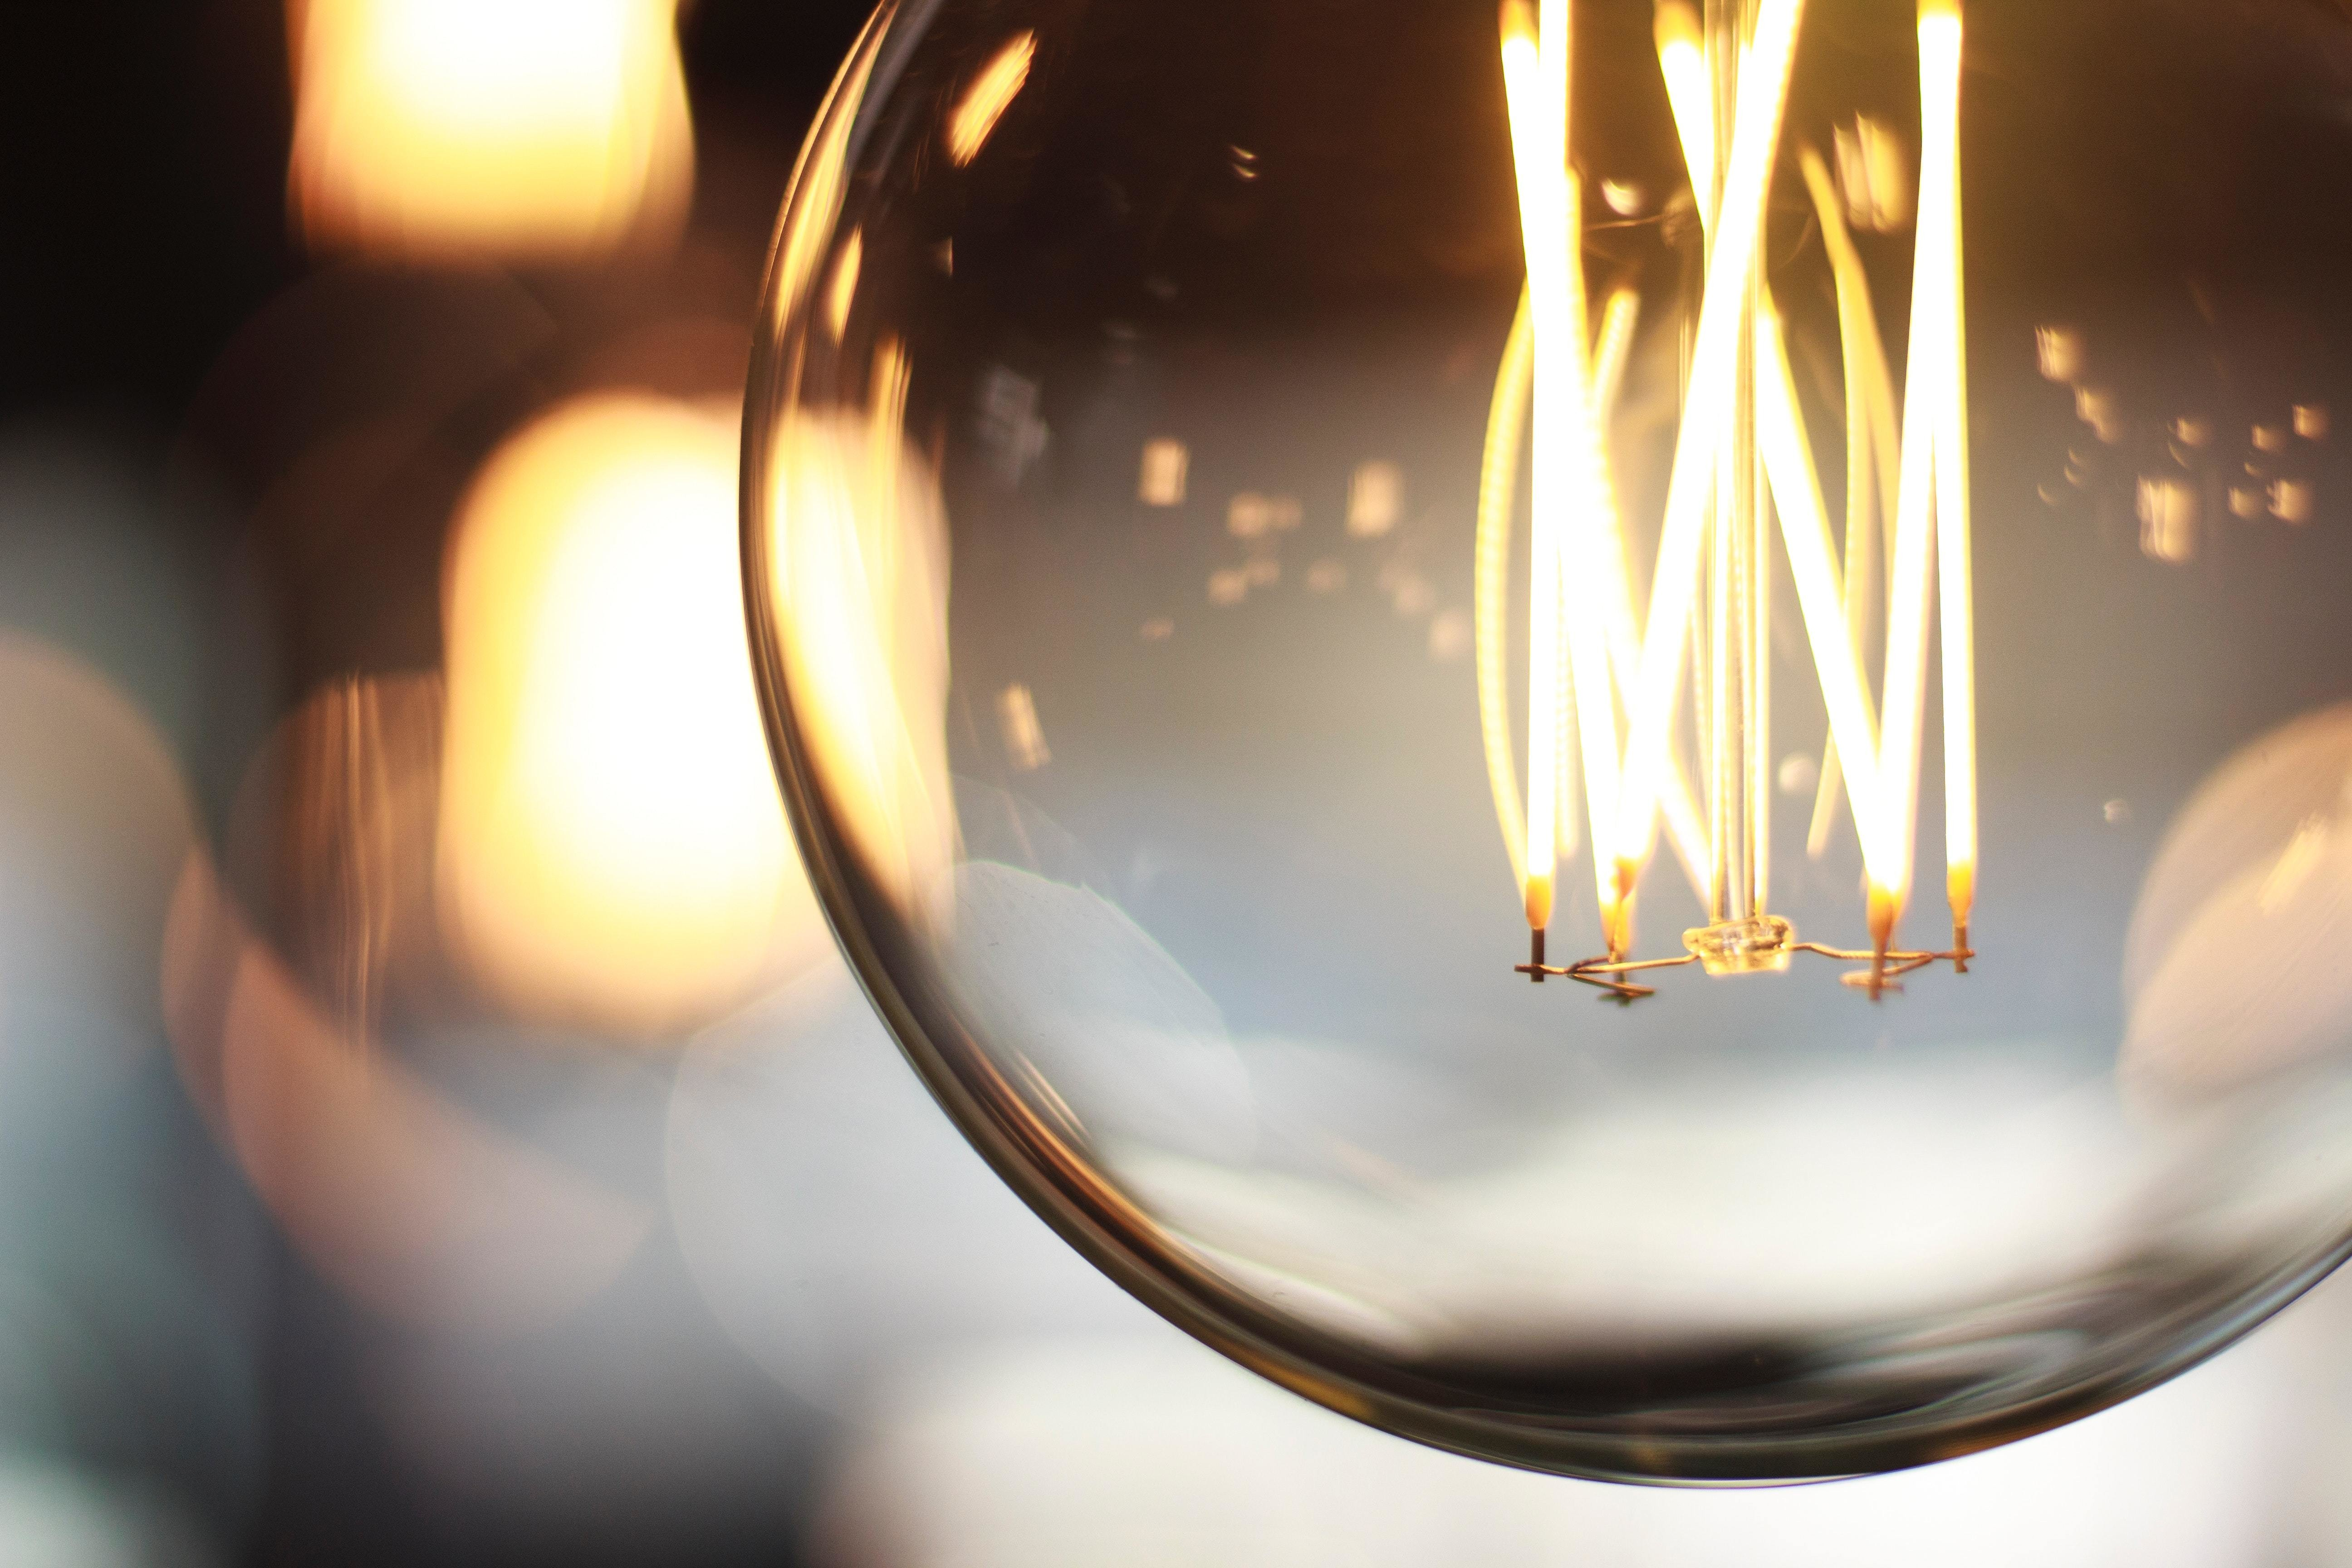 bright idea - use technology and evidence to make policies